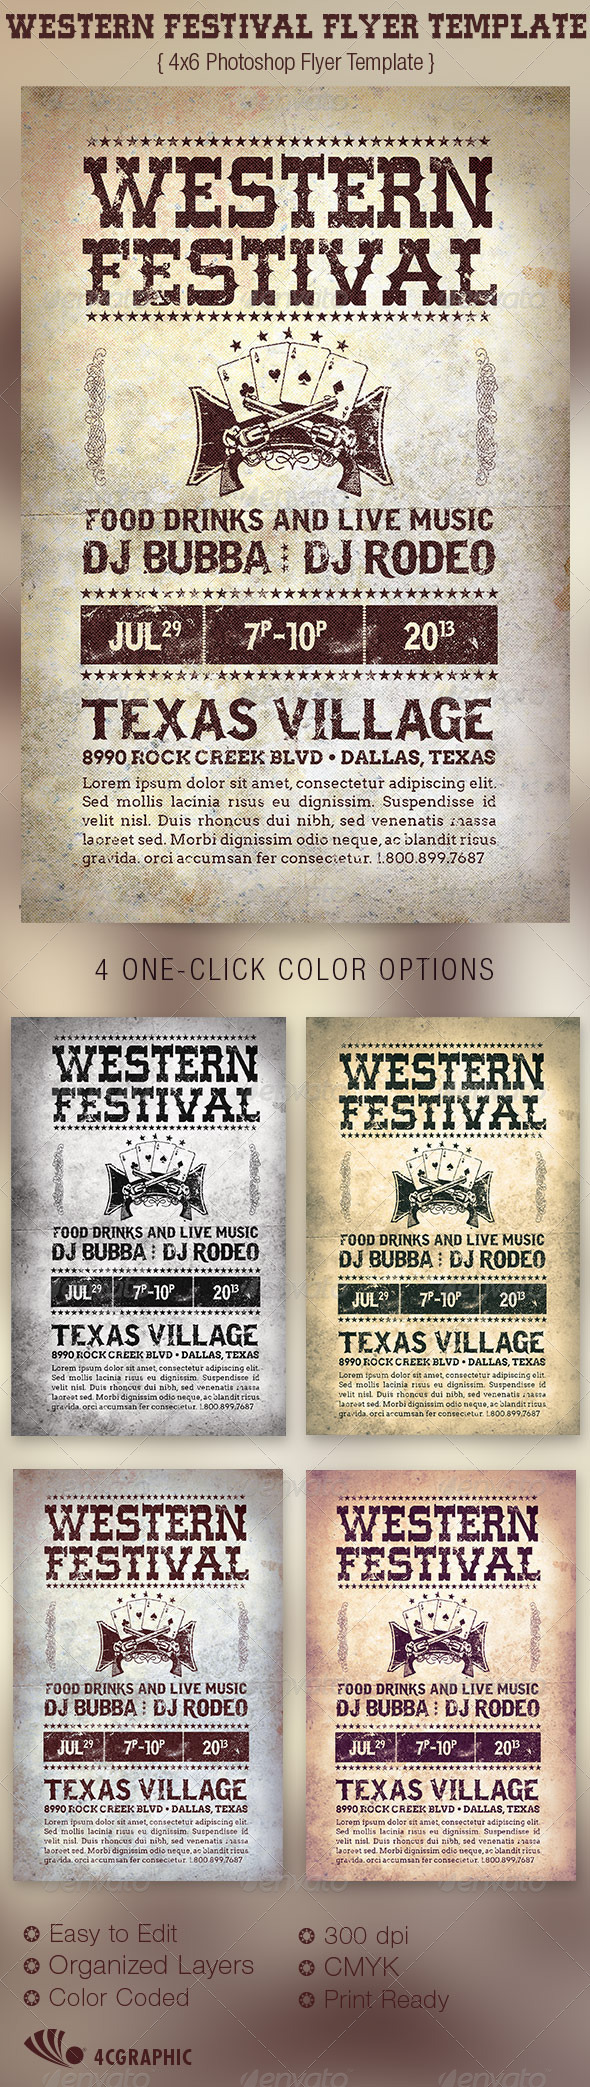 Western Festival Flyer Template - Events Flyers